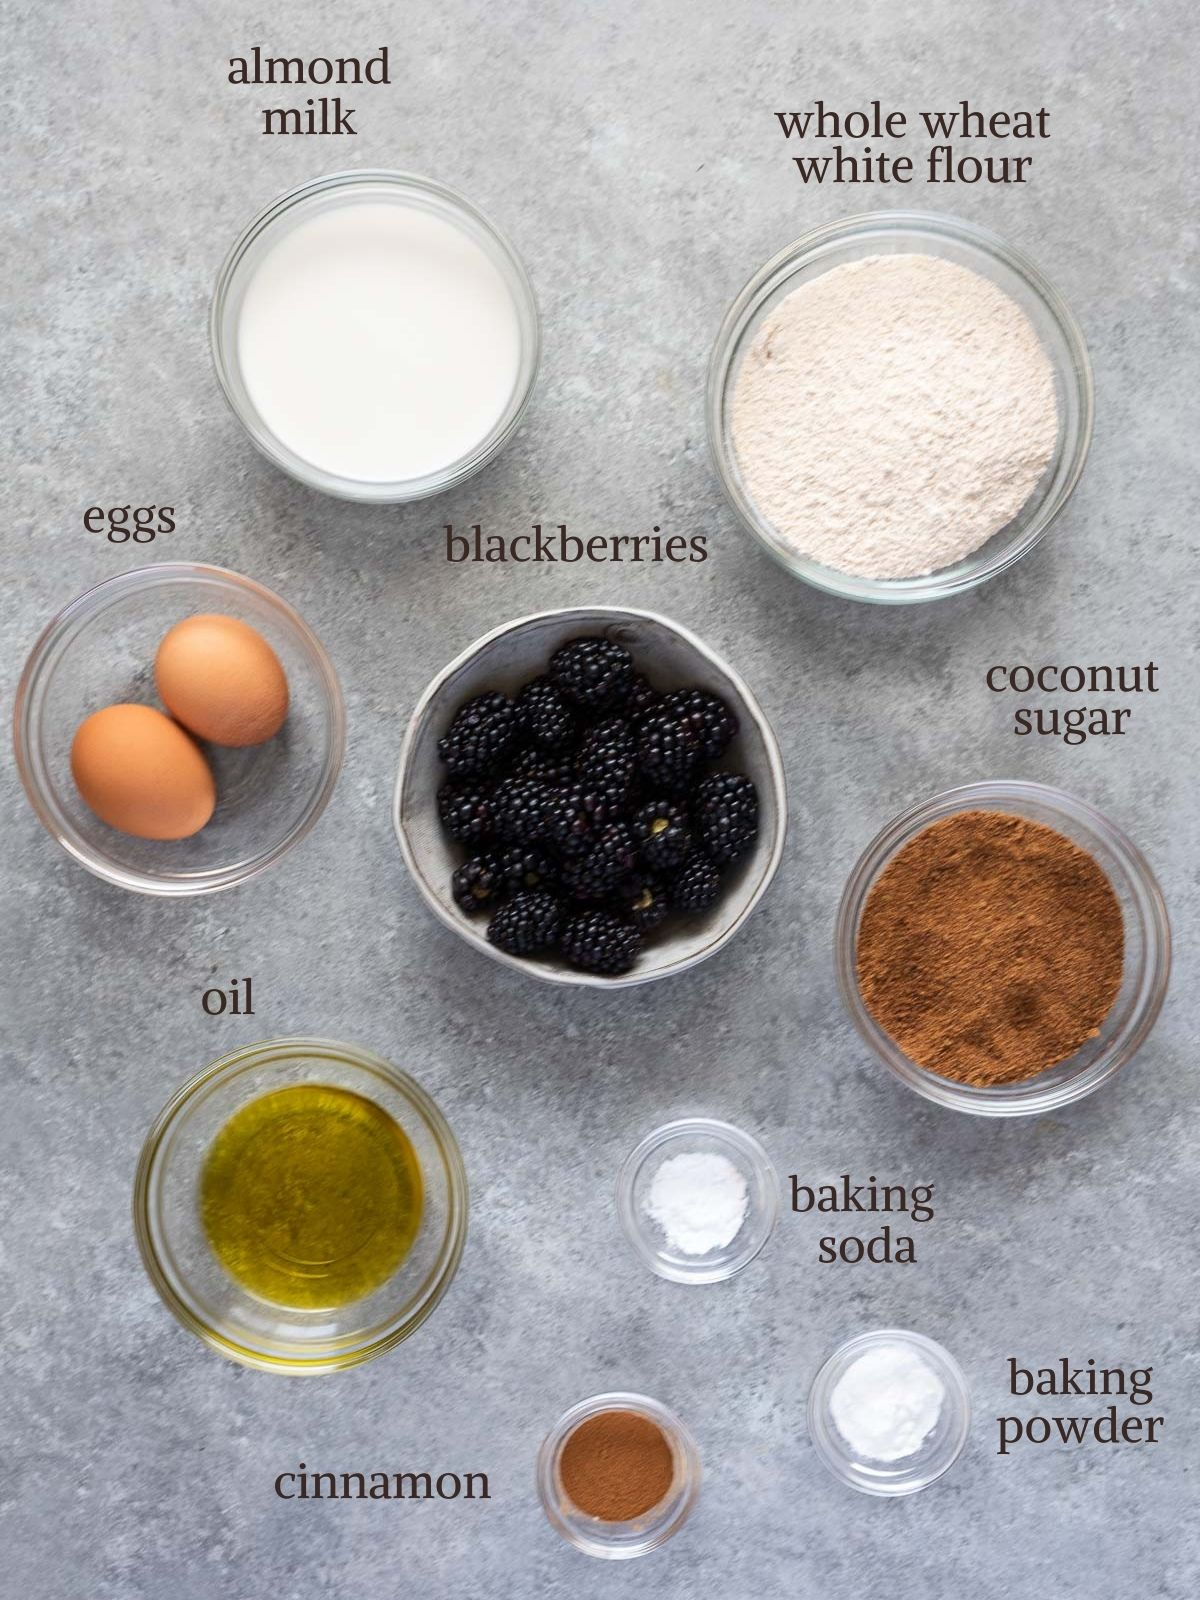 Blackberry muffin recipe ingredients